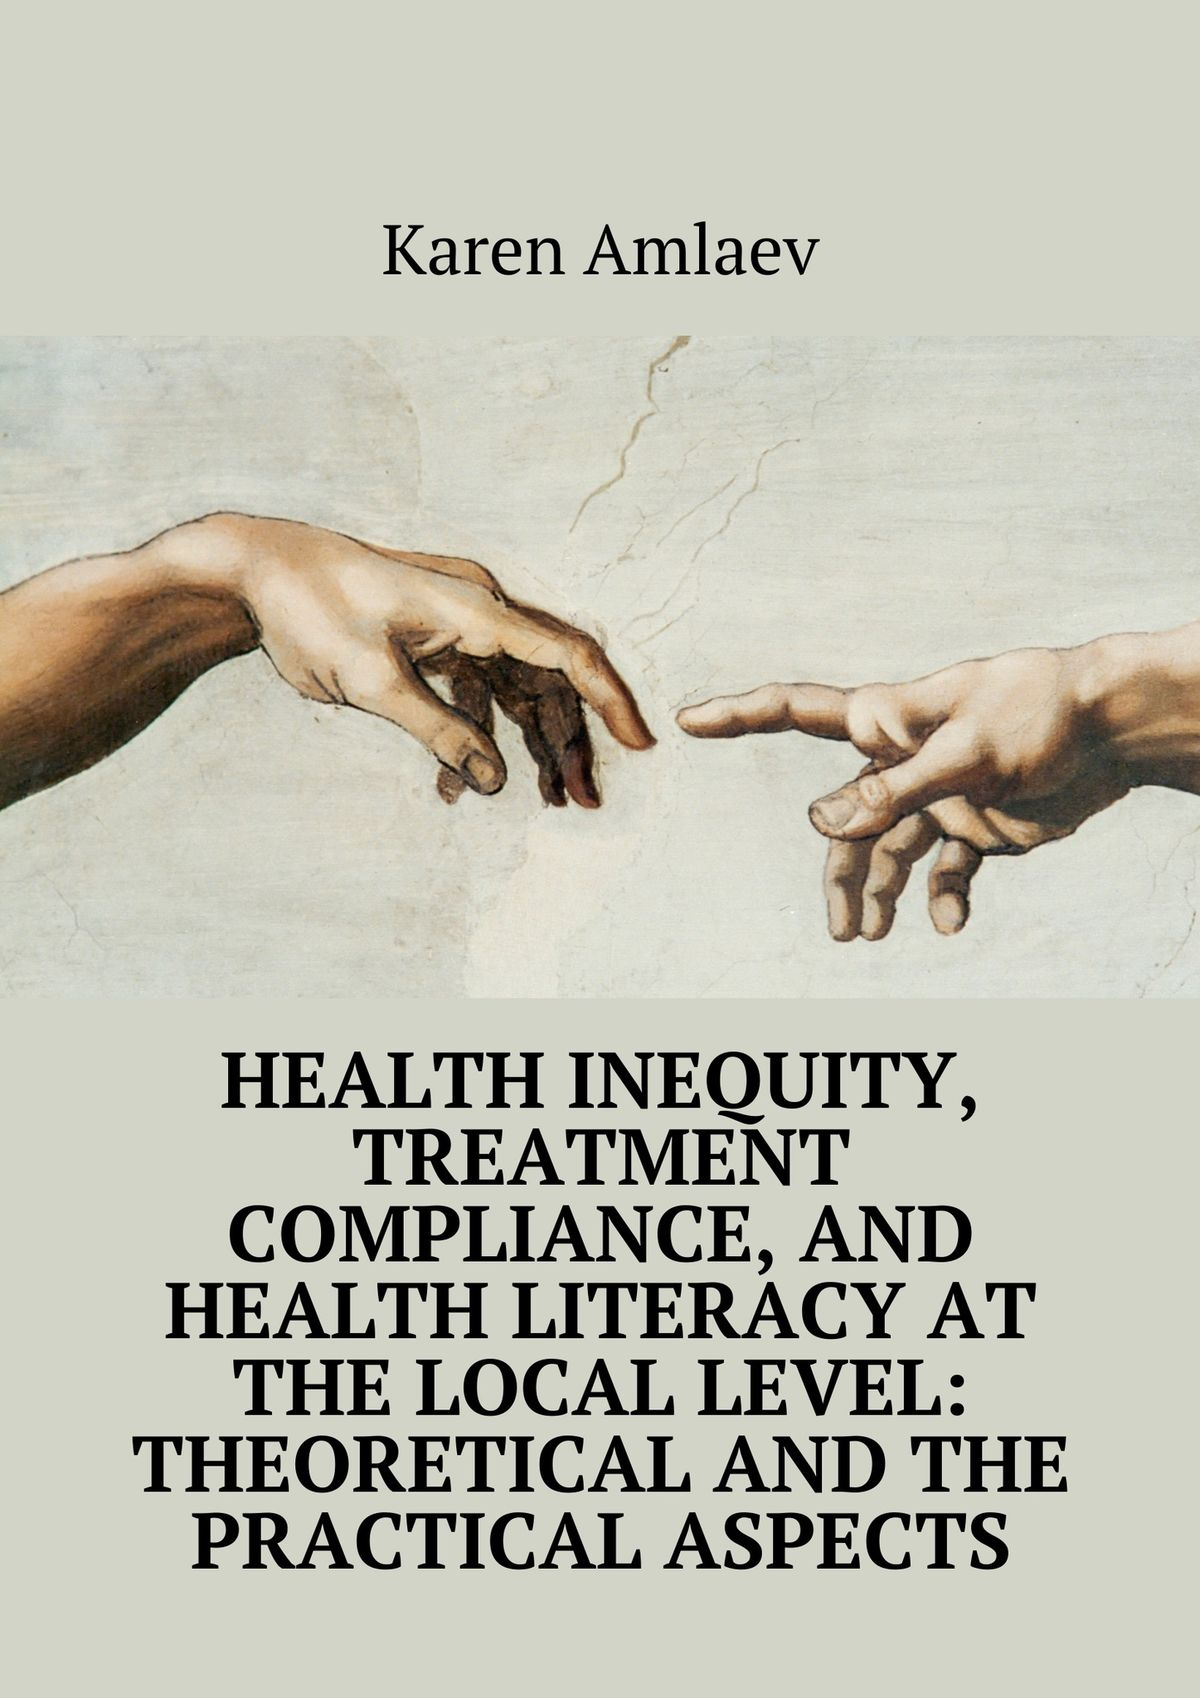 Karen Amlaev Health inequity, treatment compliance, and health literacy at the local level: theoretical and practical aspects karen amlaev health inequity treatment compliance and health literacy at the local level theoretical and practical aspects